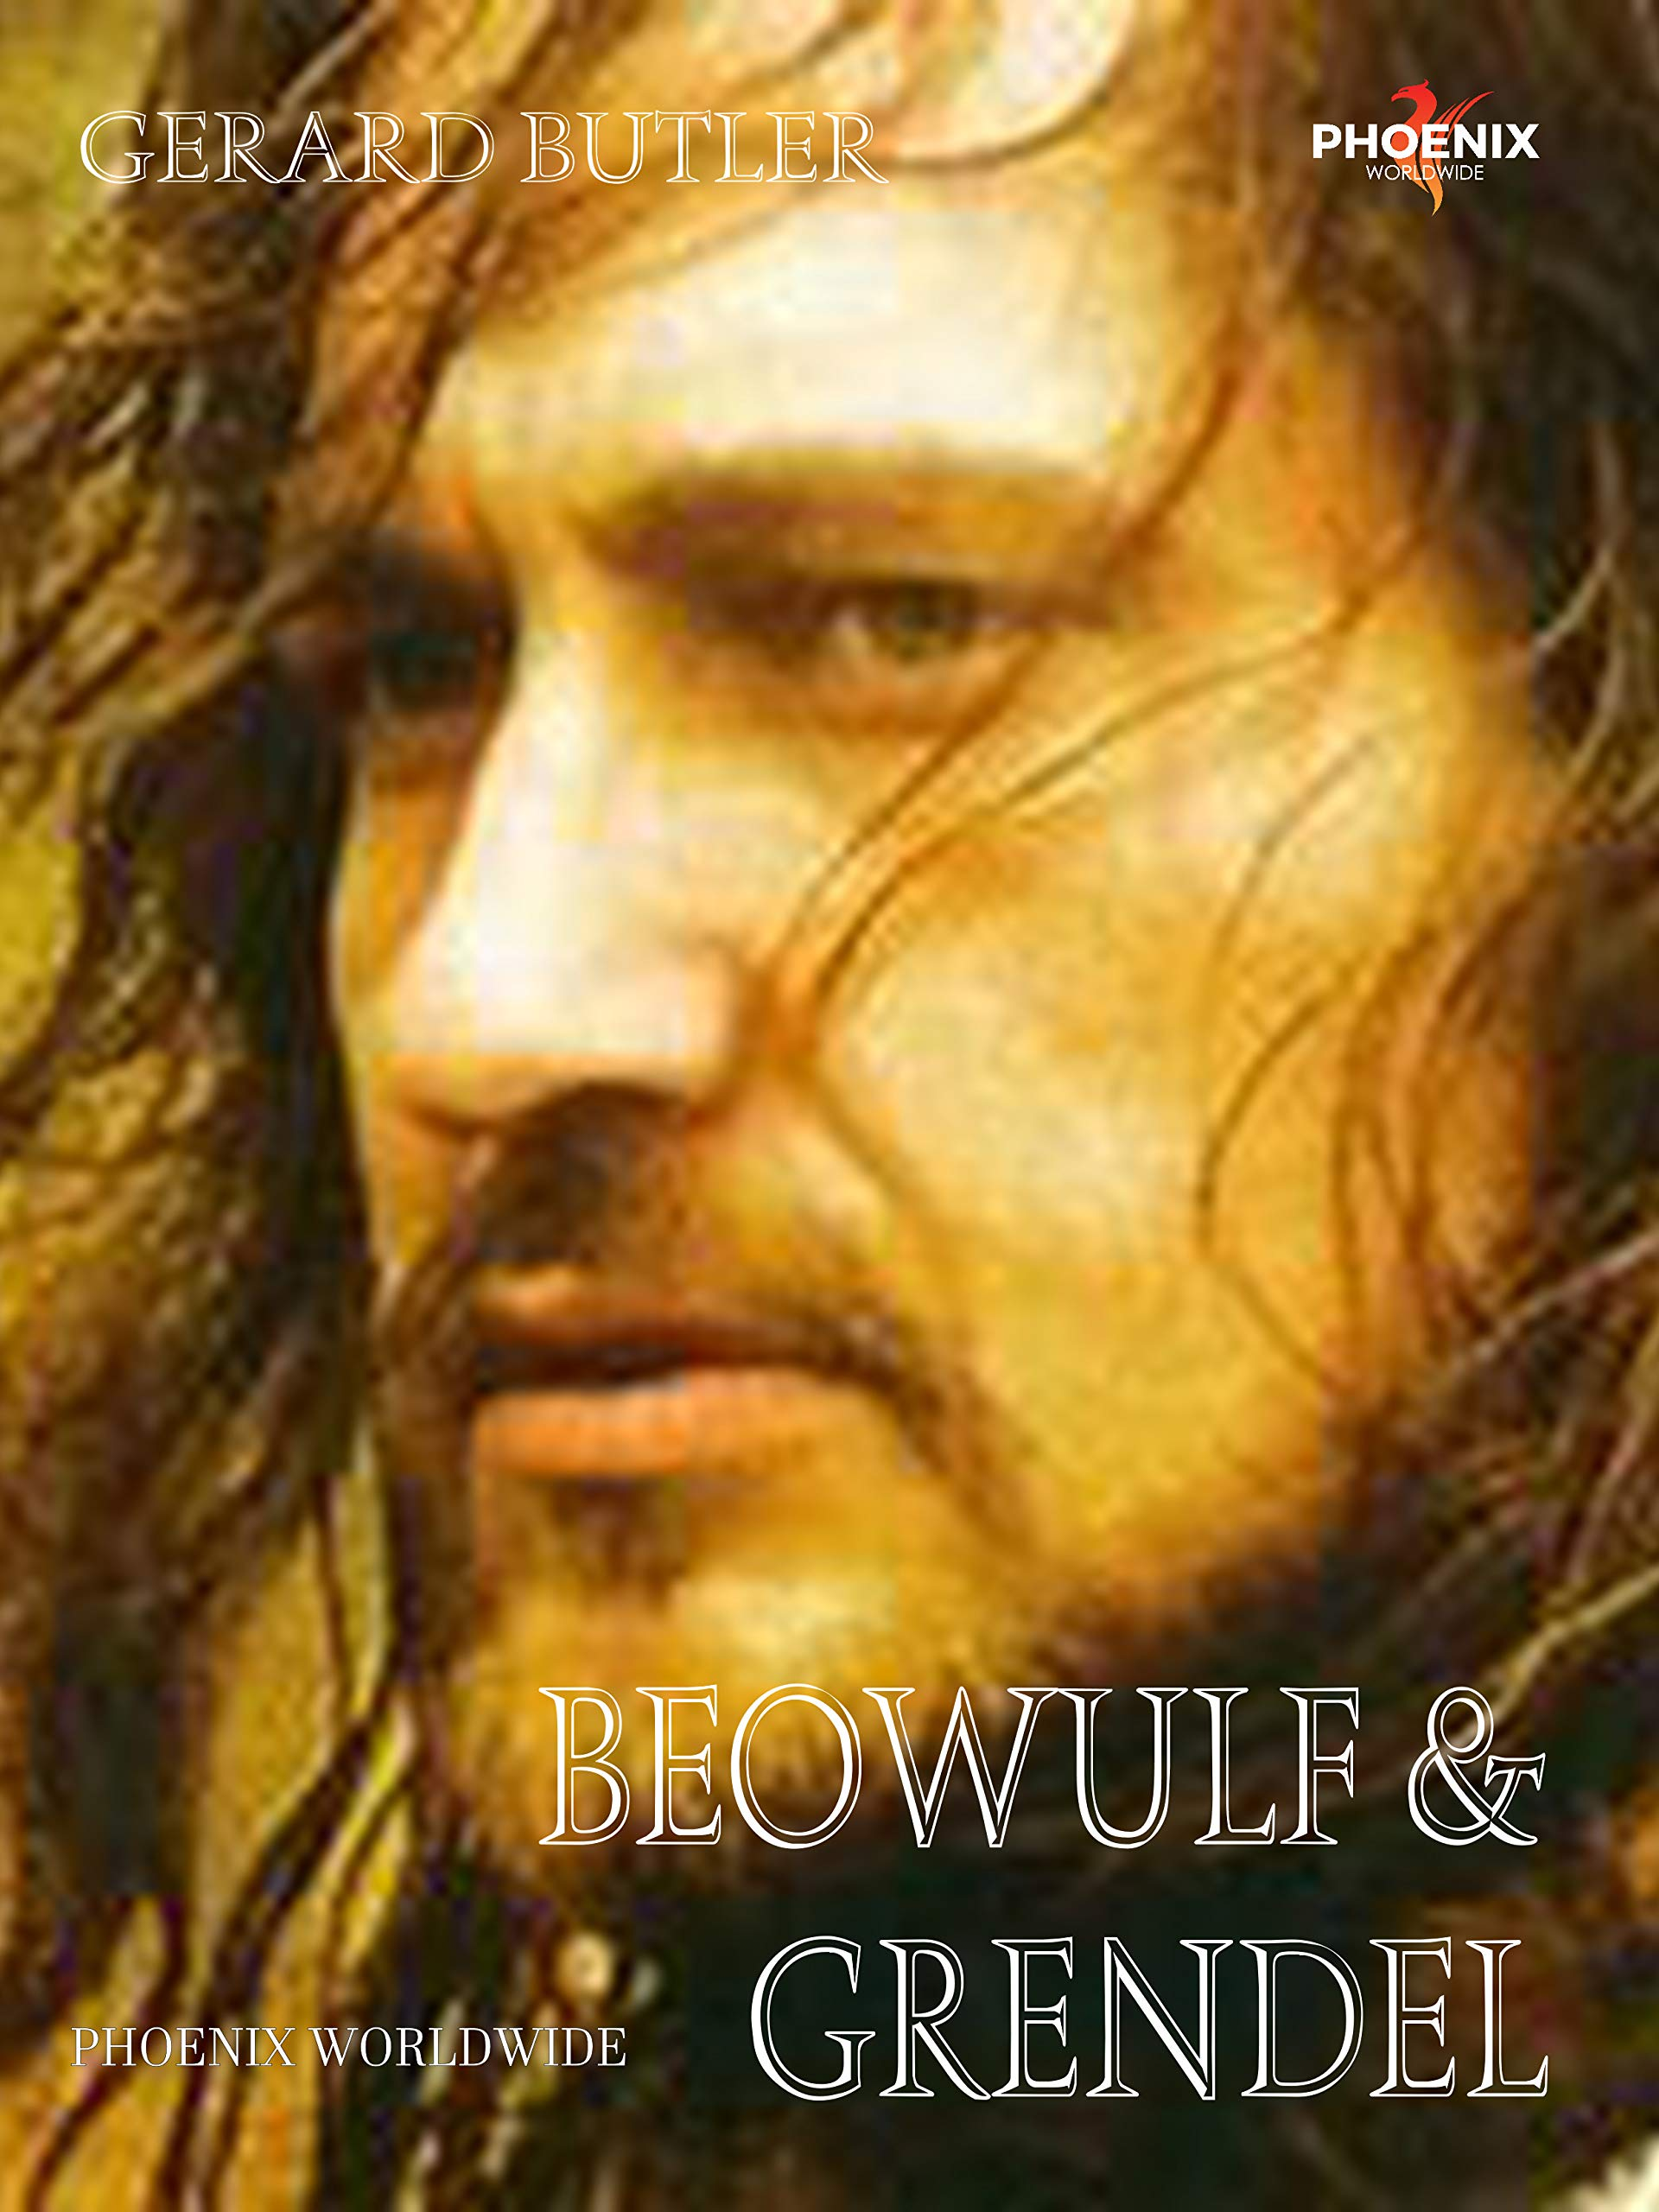 beowulf and grendel full movie online